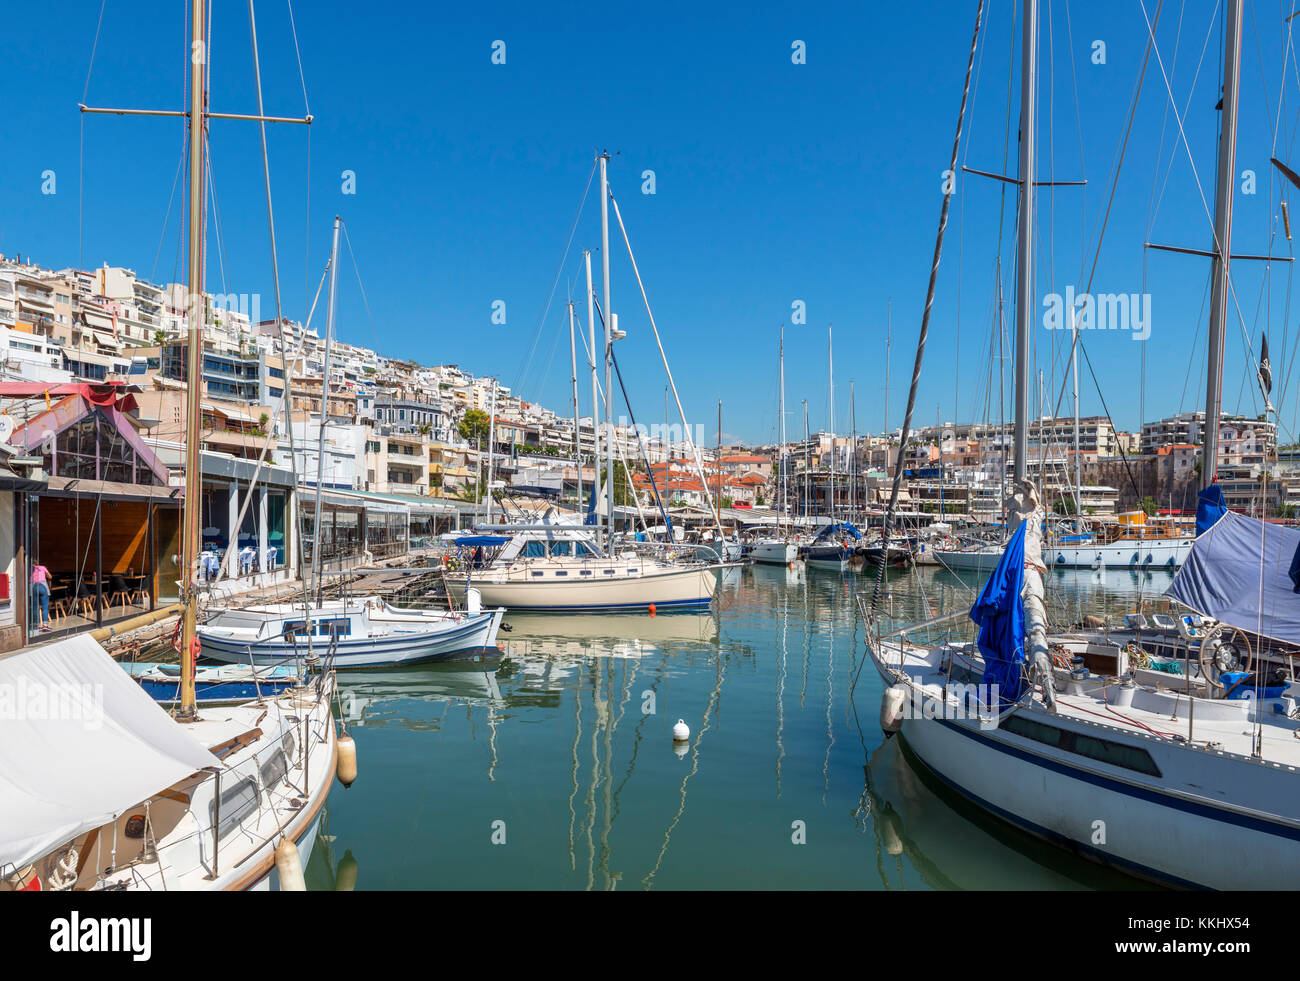 Boats in the Mikrolimano, Piraeus (Pireas), Athens, Greece - Stock Image